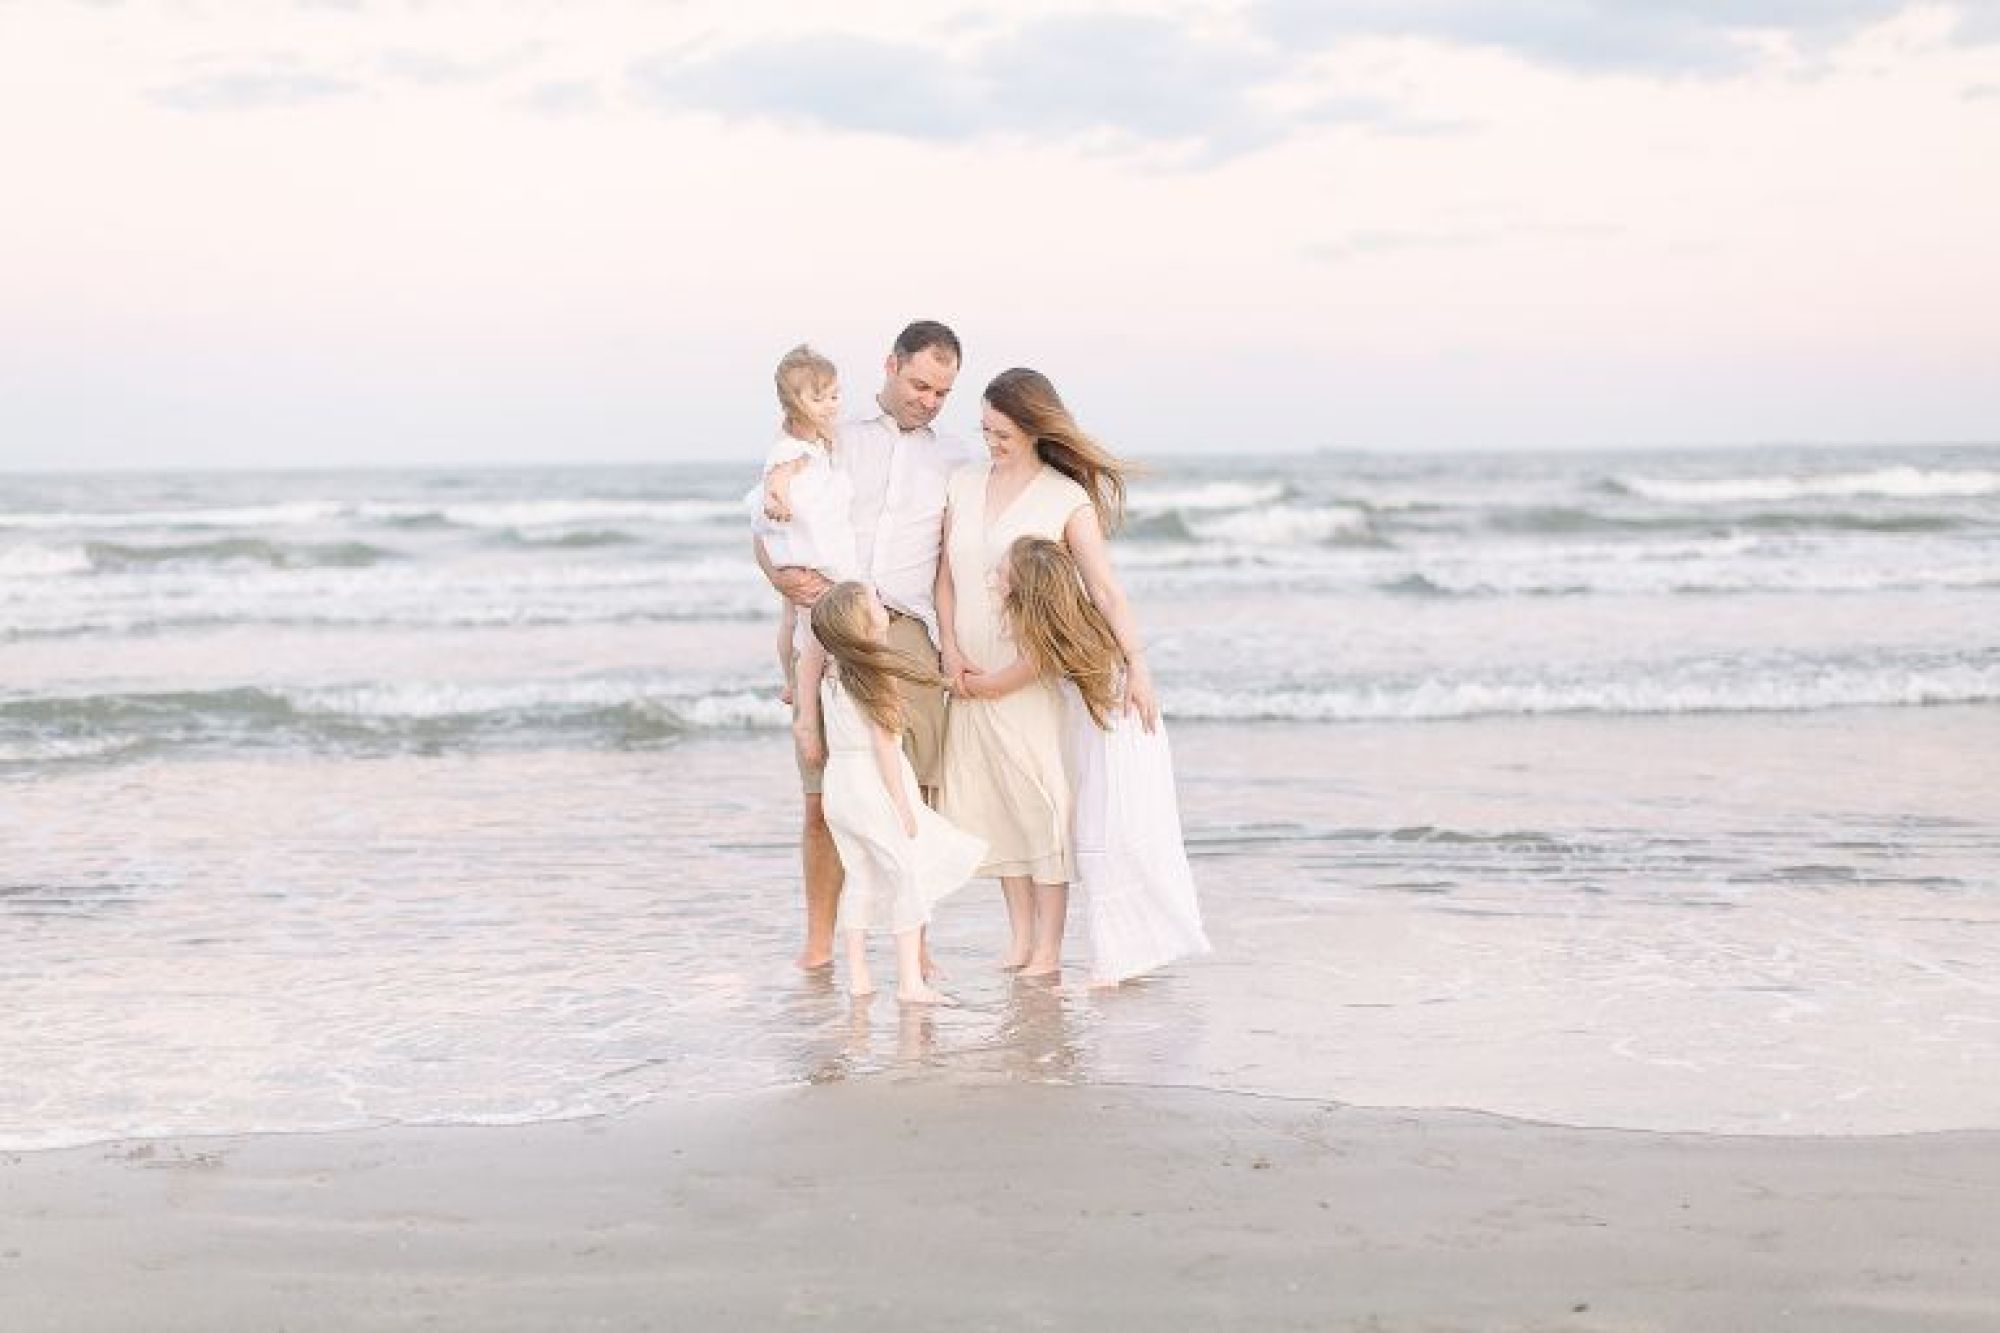 Sunset family session on the beach in Galveston, TX | Photo by Courtney Griffin Photography